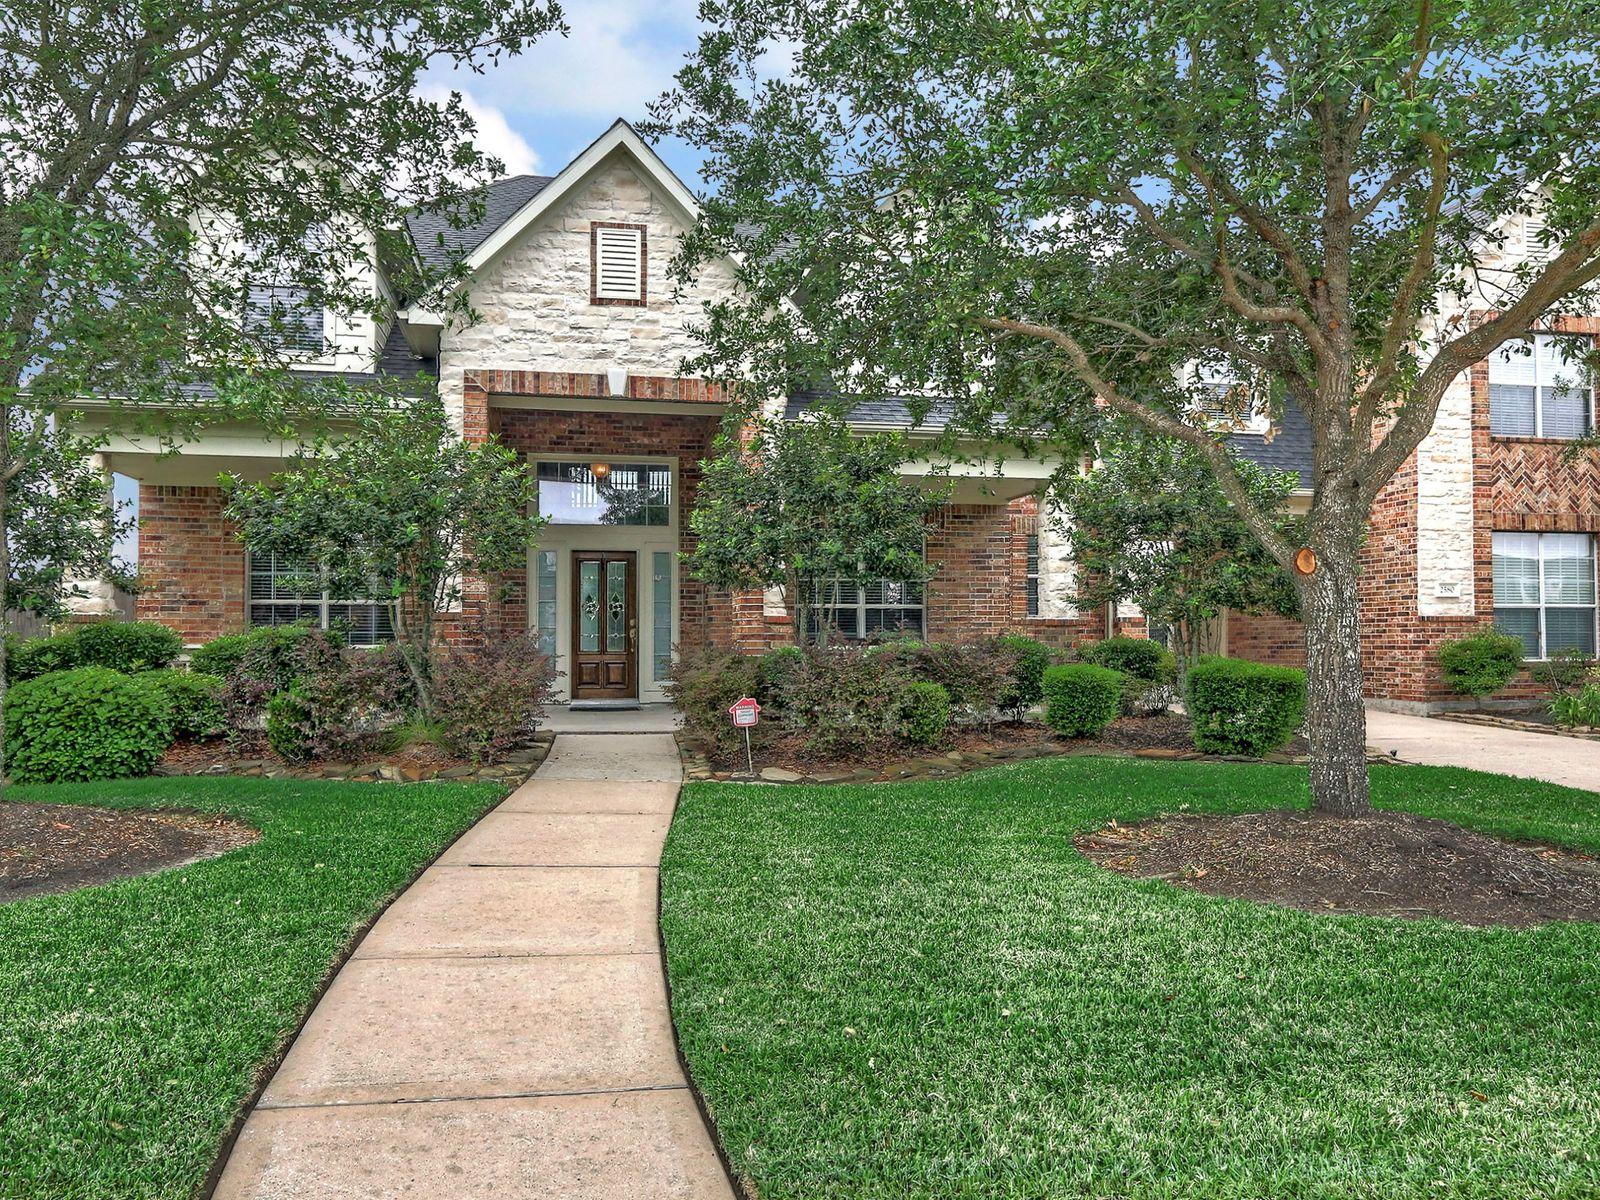 2580 Costa Mesa Circle, League City TX Single Family Home - Houston Real Estate